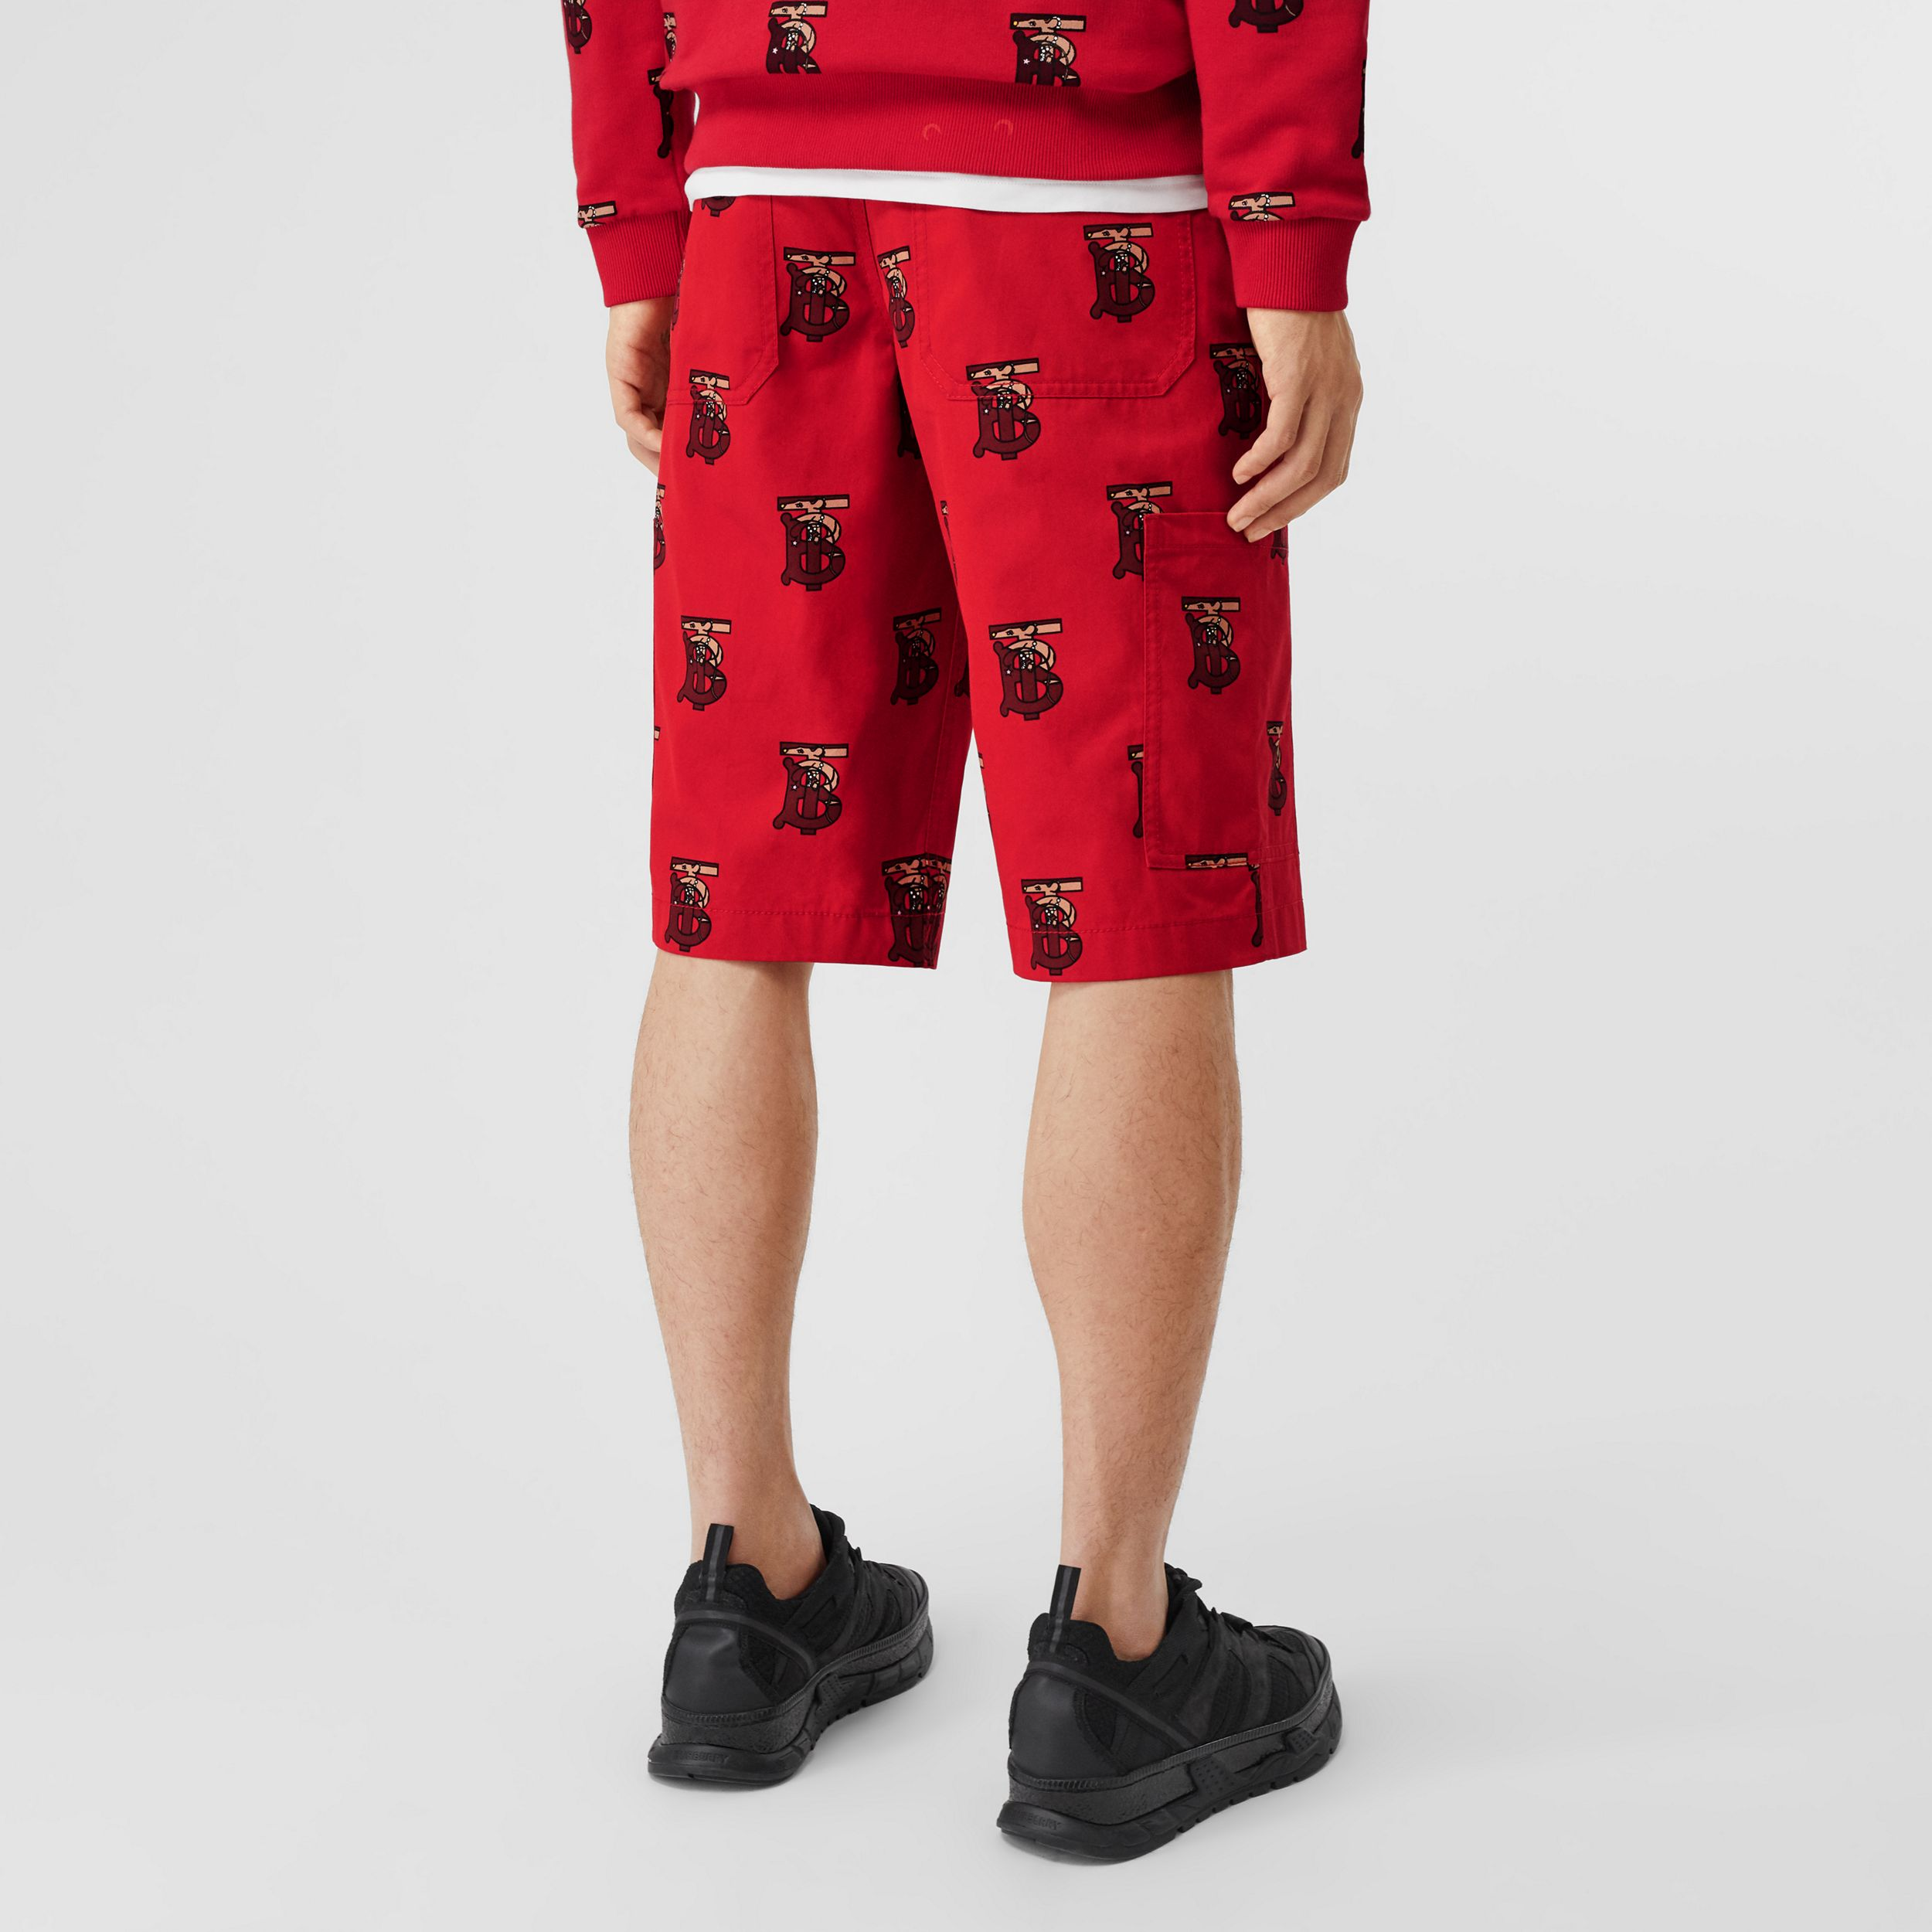 Monogram Motif Cotton Tailored Shorts in Bright Red - Men | Burberry United States - 3